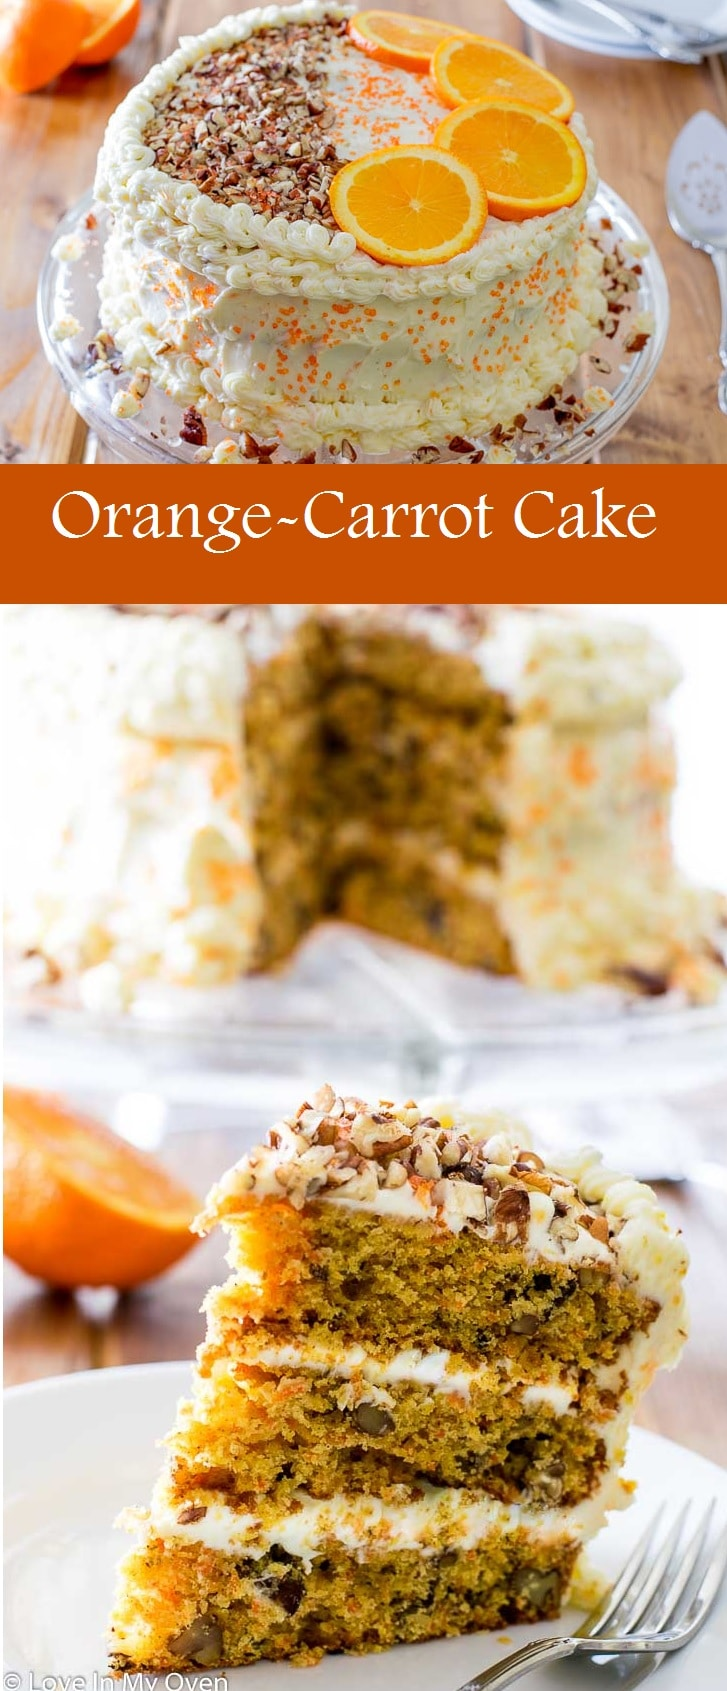 Your favoritecarrot cake, with a hint of orange and smothered in a luscious, orange flavored cream cheese frosting. The perfect springtime cake!